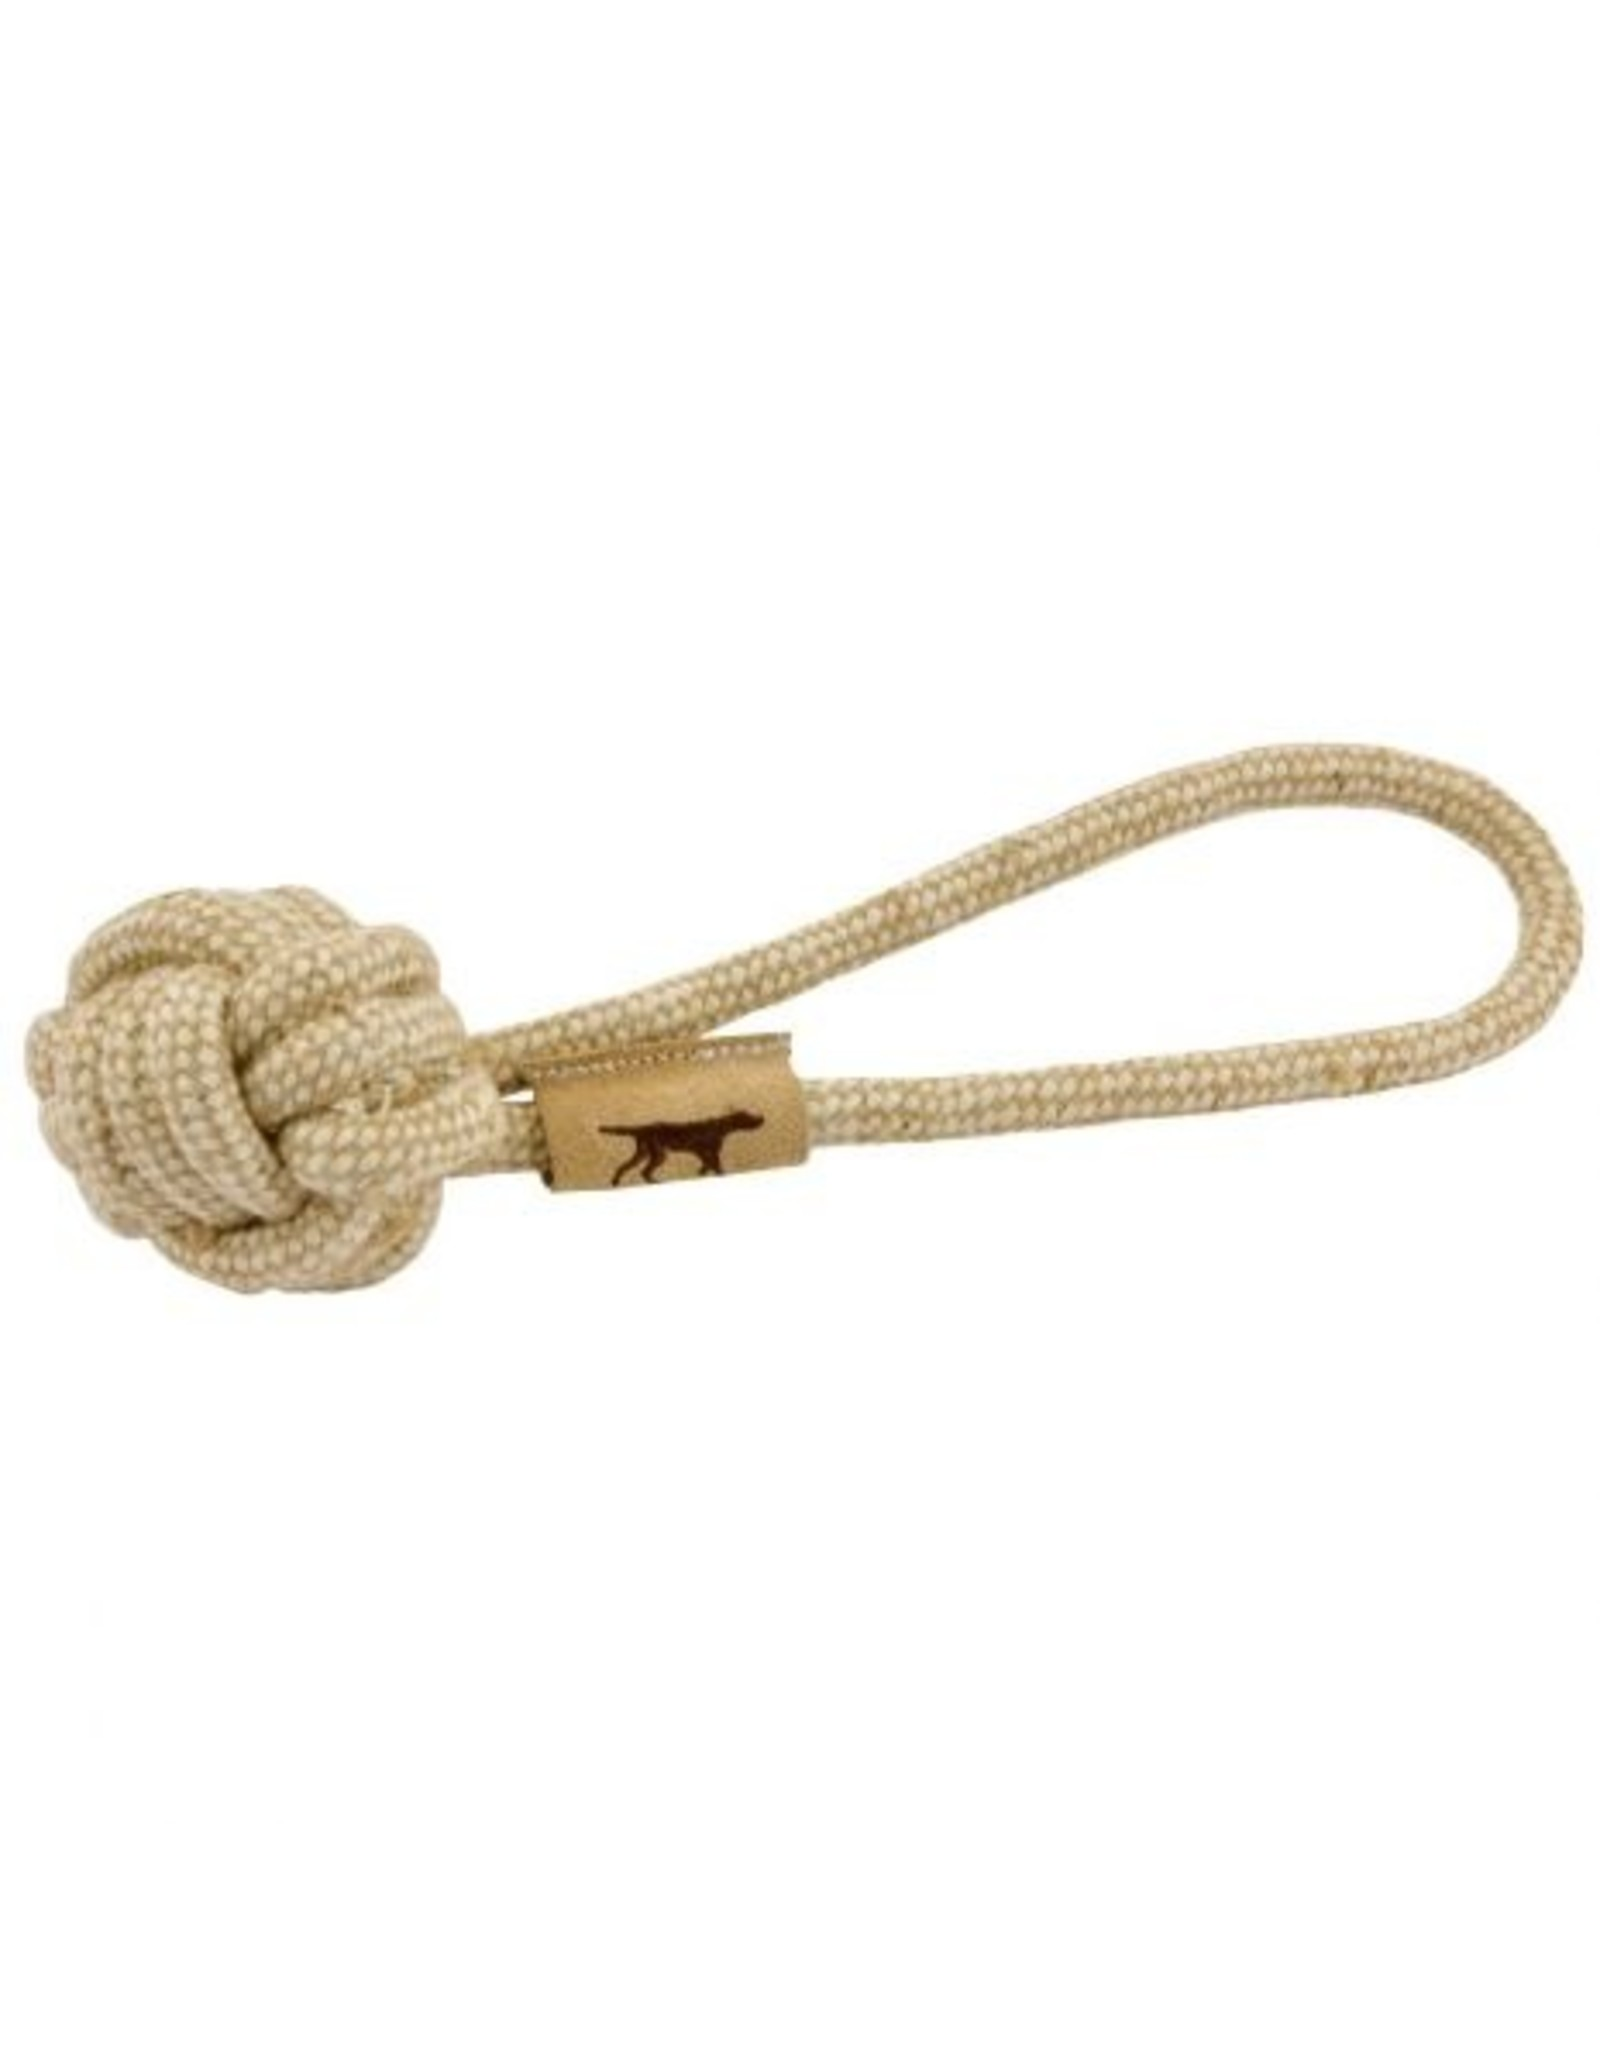 Tall Tails Tall Tails Natural Cotton and Jute Tug Dog Toy